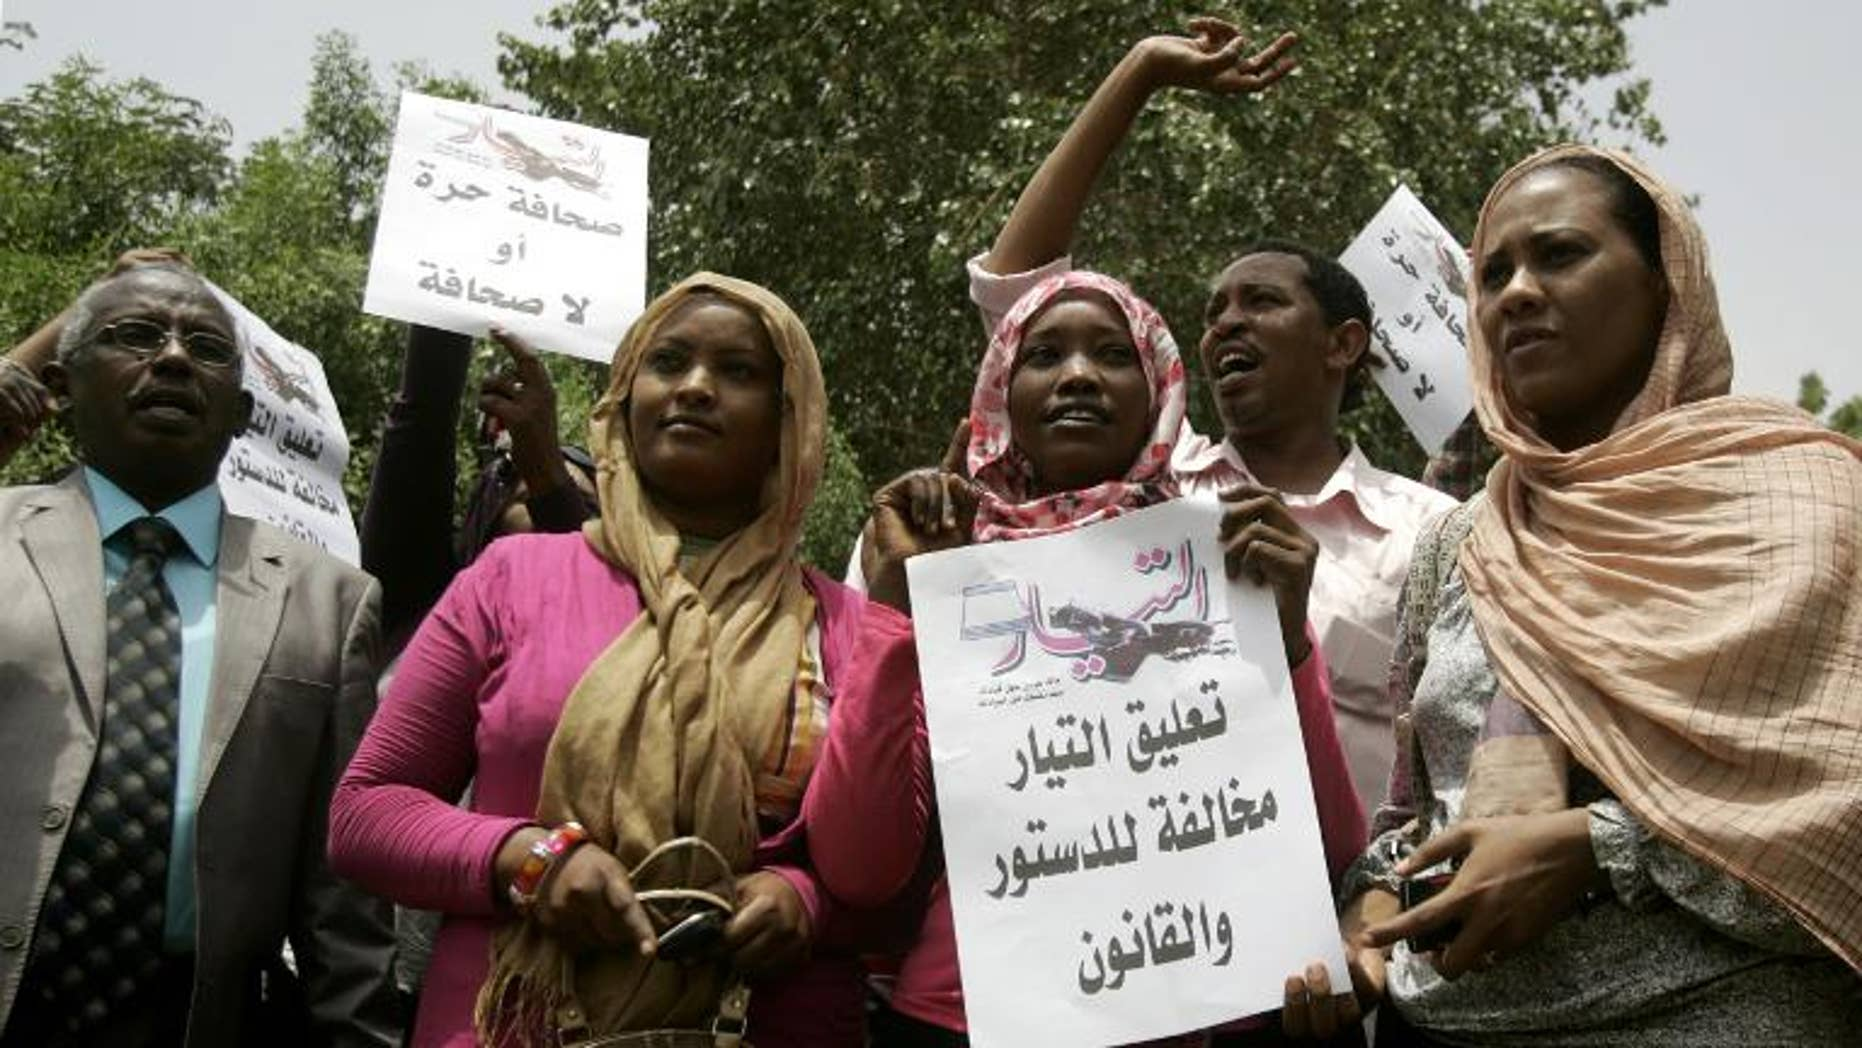 """Sudanese journalists hold slogans which read in Arabic """"Press freedom or no press"""" and """" Suspension of Al-Tayyar daily is against the constitution and law"""" in Khartoum on July 17, 2012"""